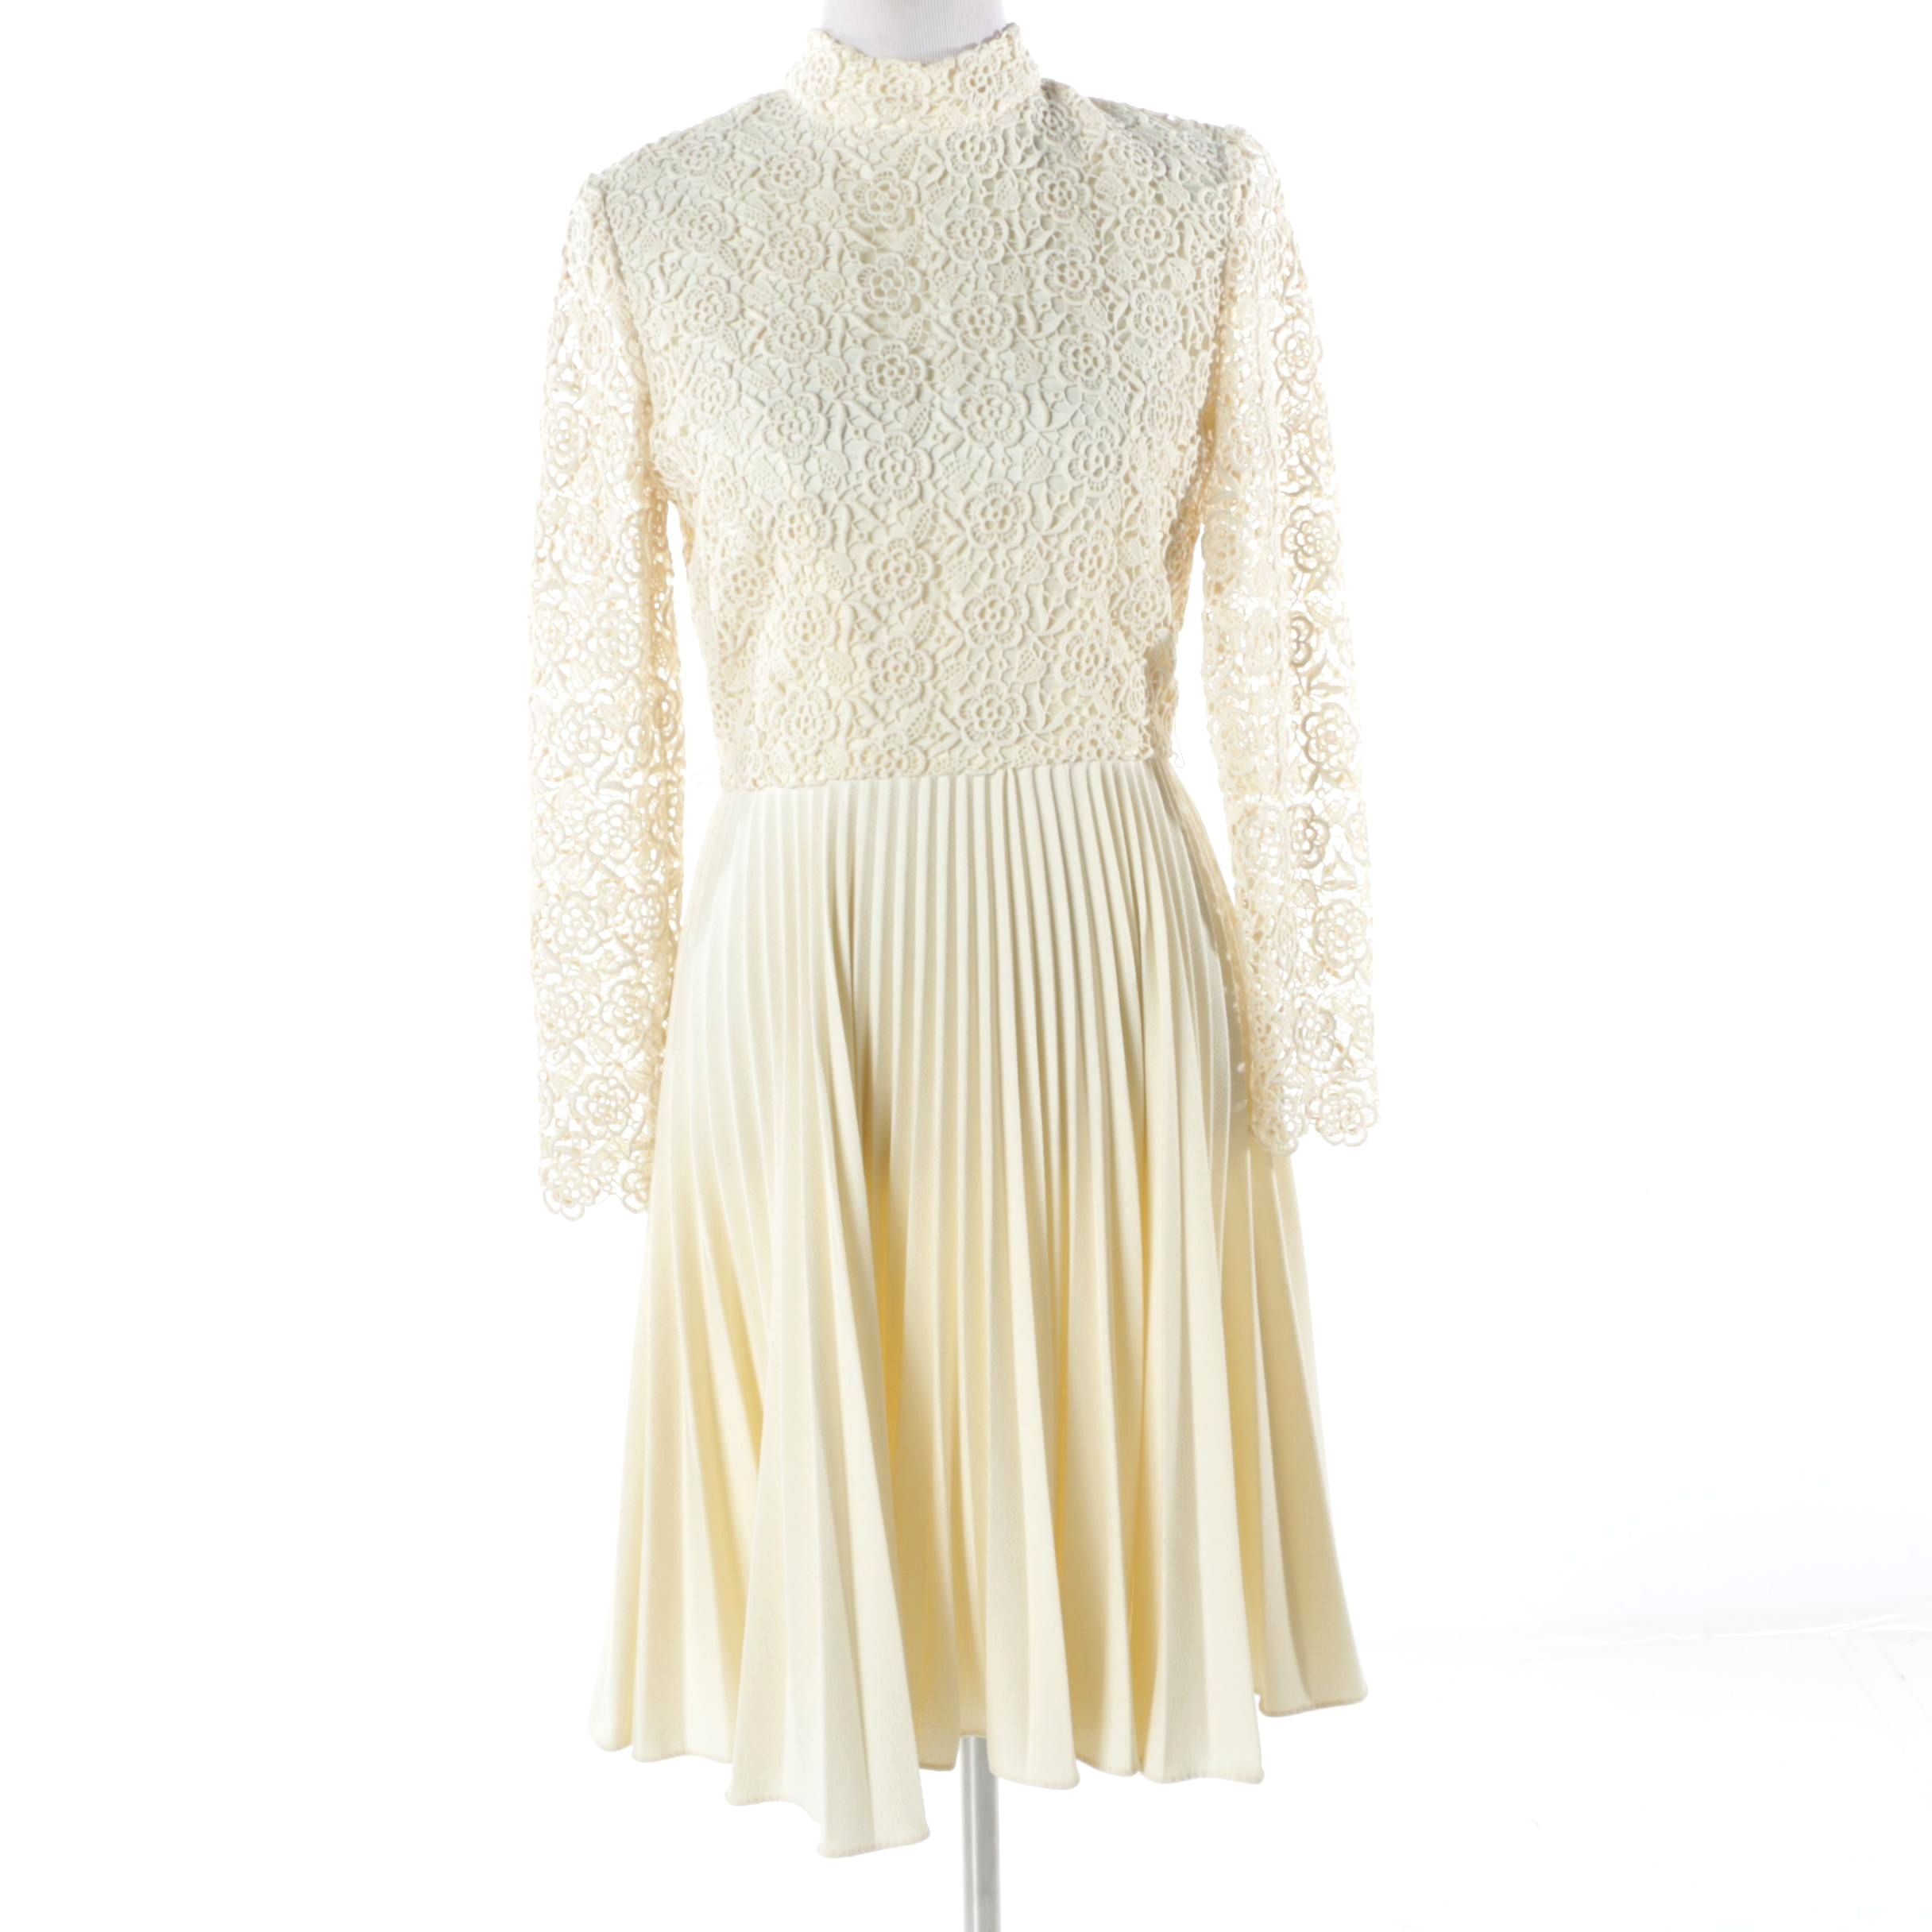 Circa 1960s Vintage Cream Crochet Lace Dress